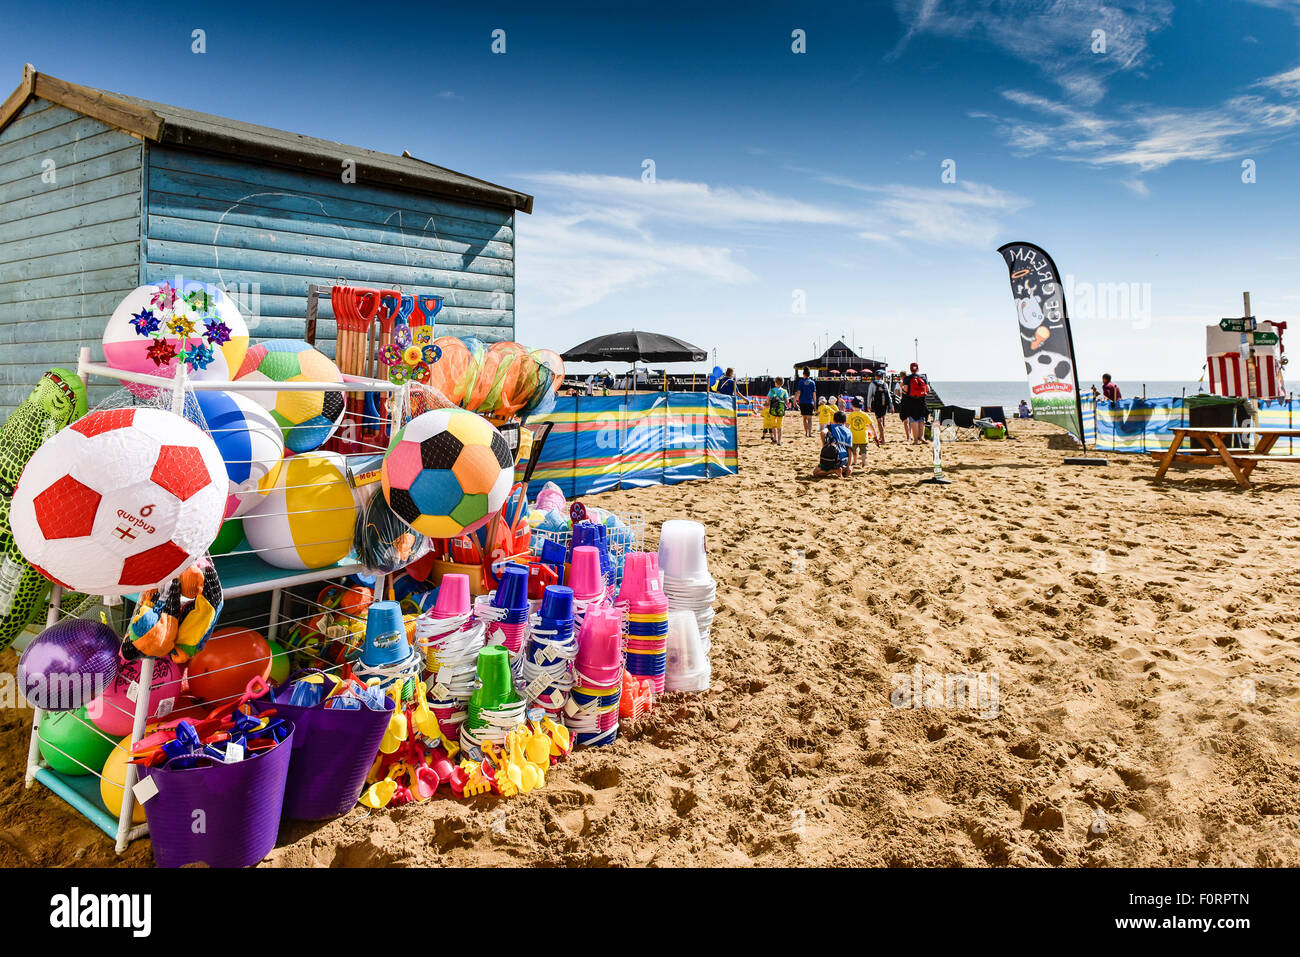 Colourful beach toys for sale on the beach at Viking Bay in Broadstairs, Kent. - Stock Image